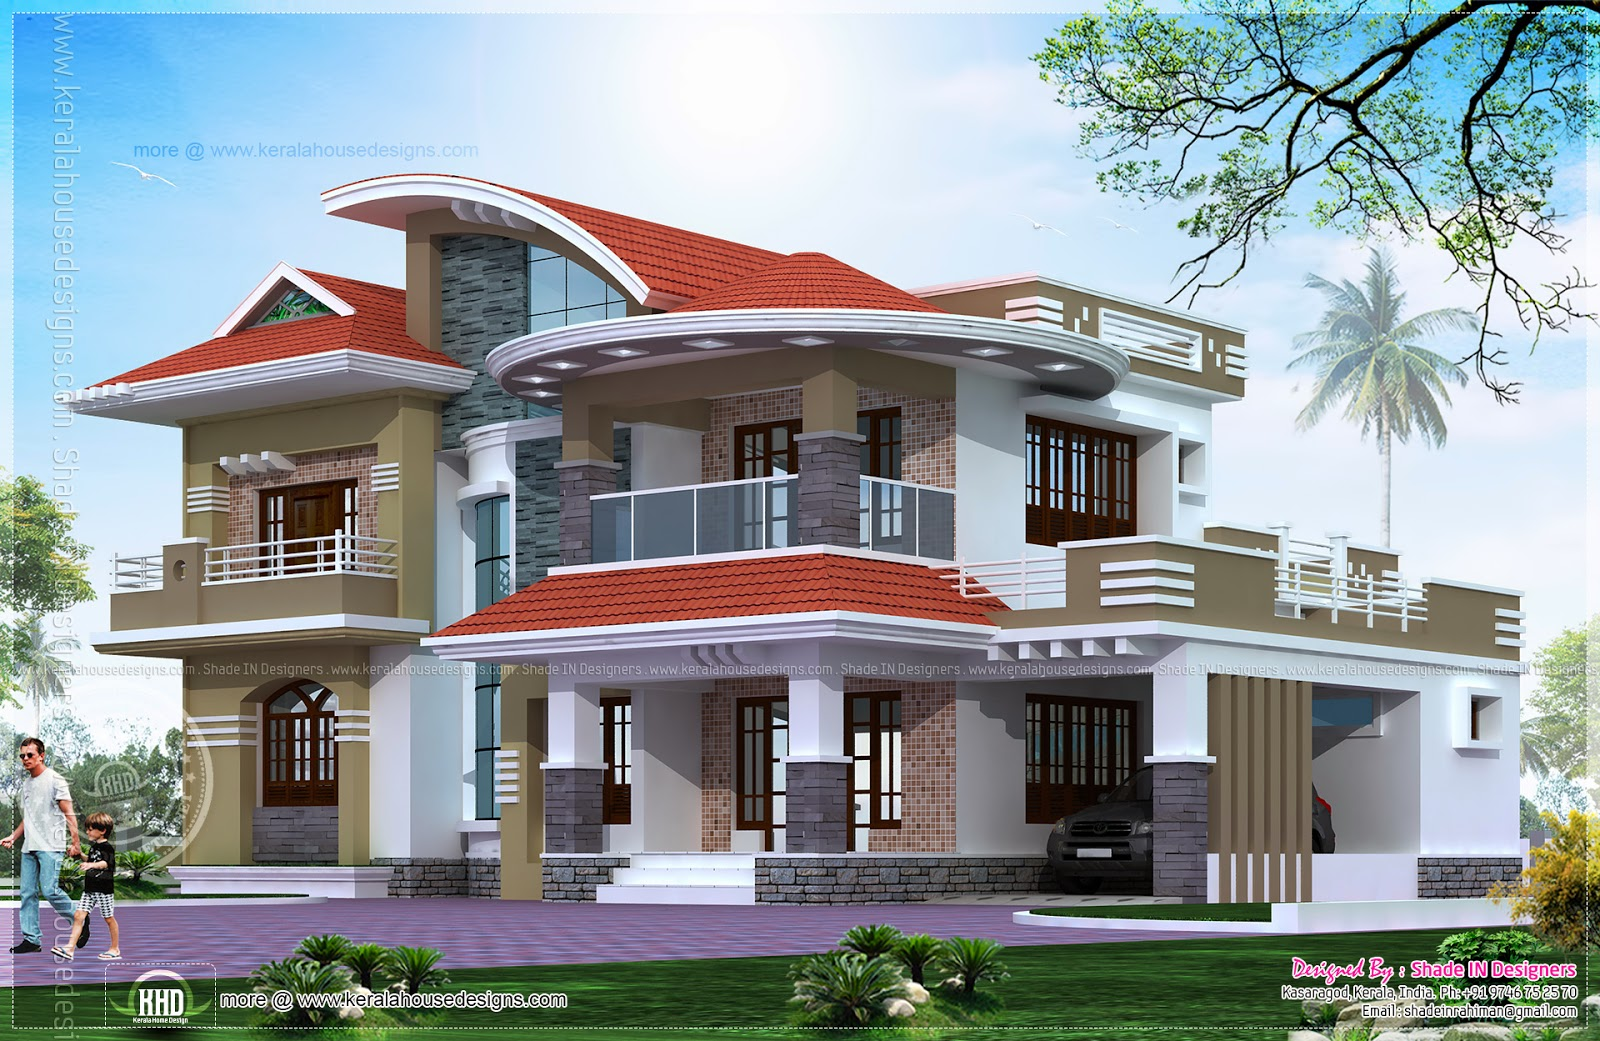 5 bedroom luxury house in kasaragod kerala home design House designers house plans